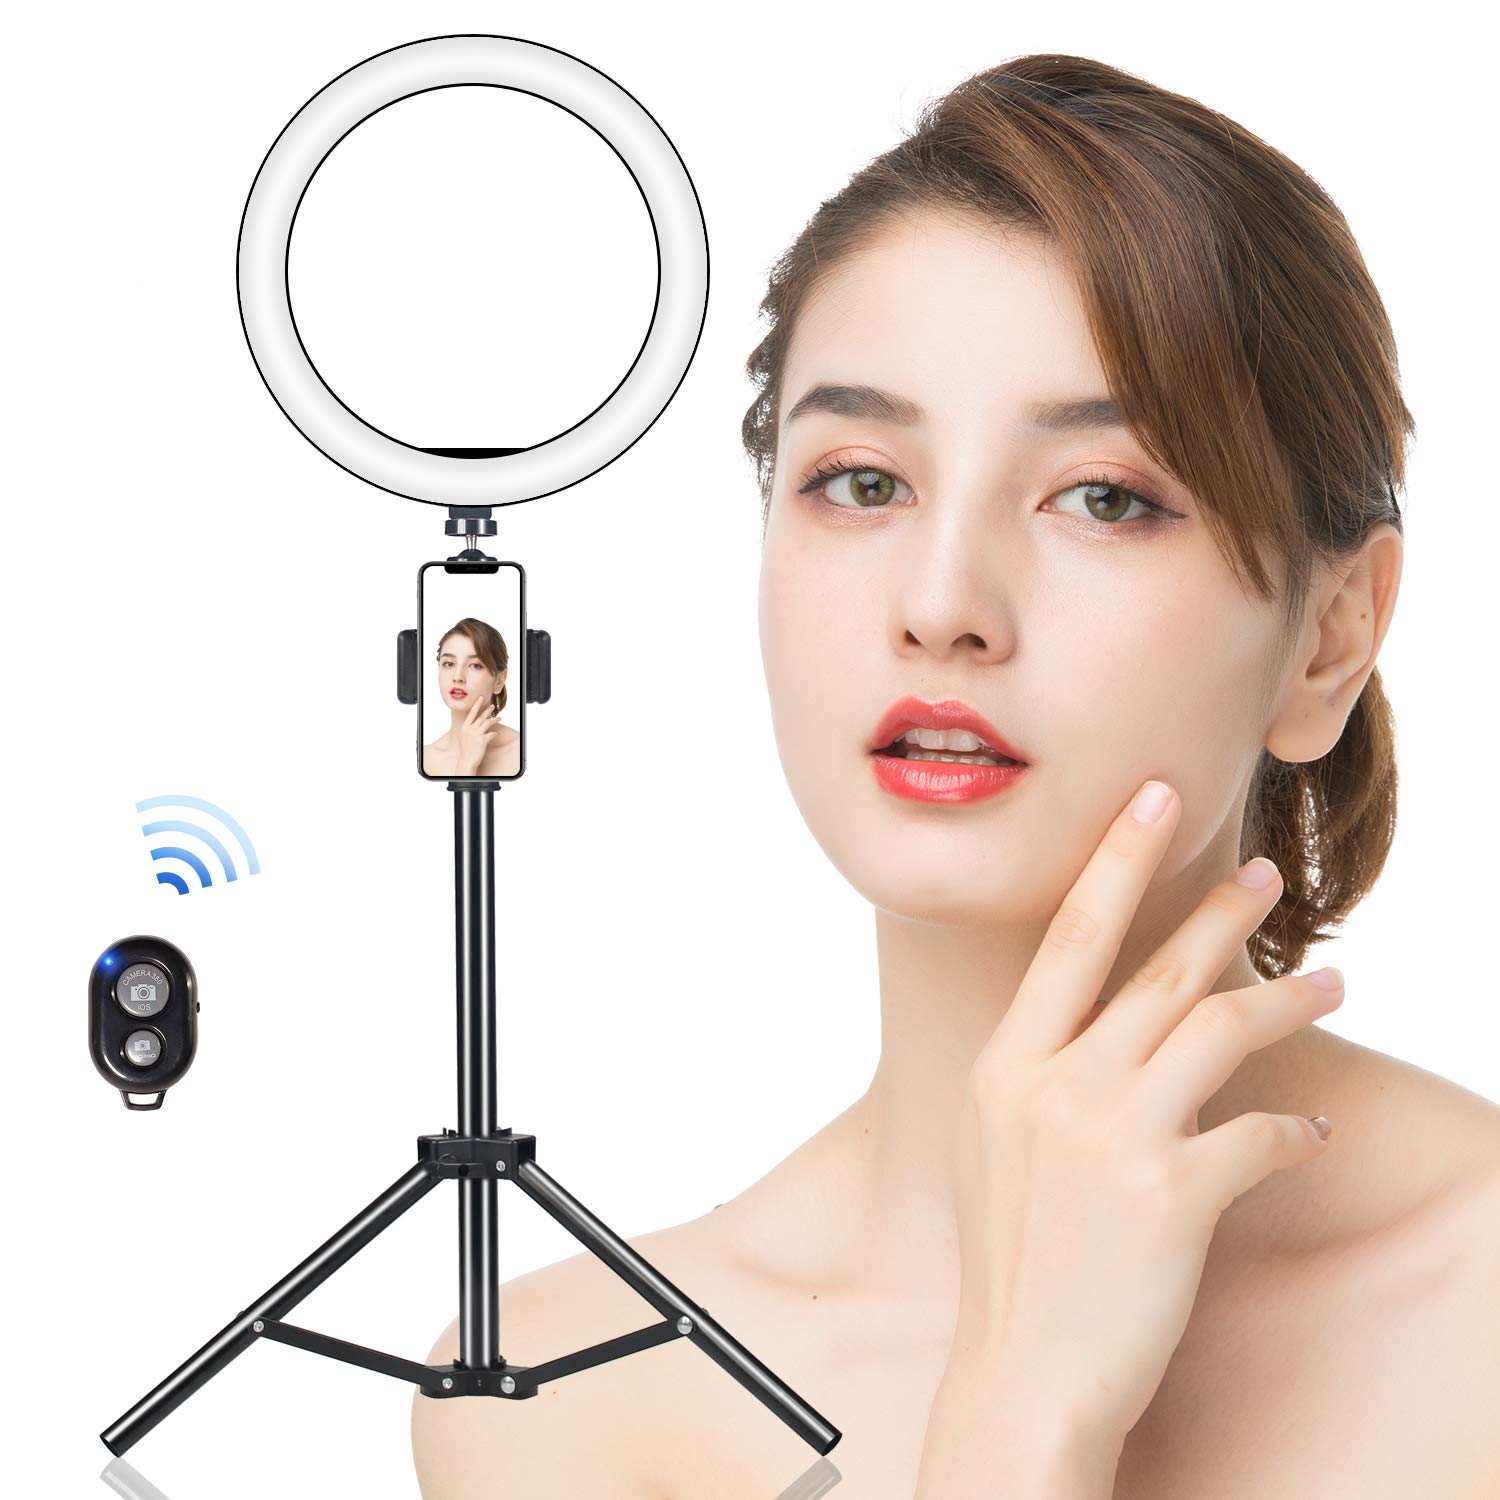 8'' Selfie LED Ring Light with Adjustable Cell Phone Tripod & Holder, FERTOY Light Ring for Live Stream/Makeup/Video, Dimmable Makeup Lamp with 3 Light Modes & 11 Brightness Level, Wireless Remote by FERTOY